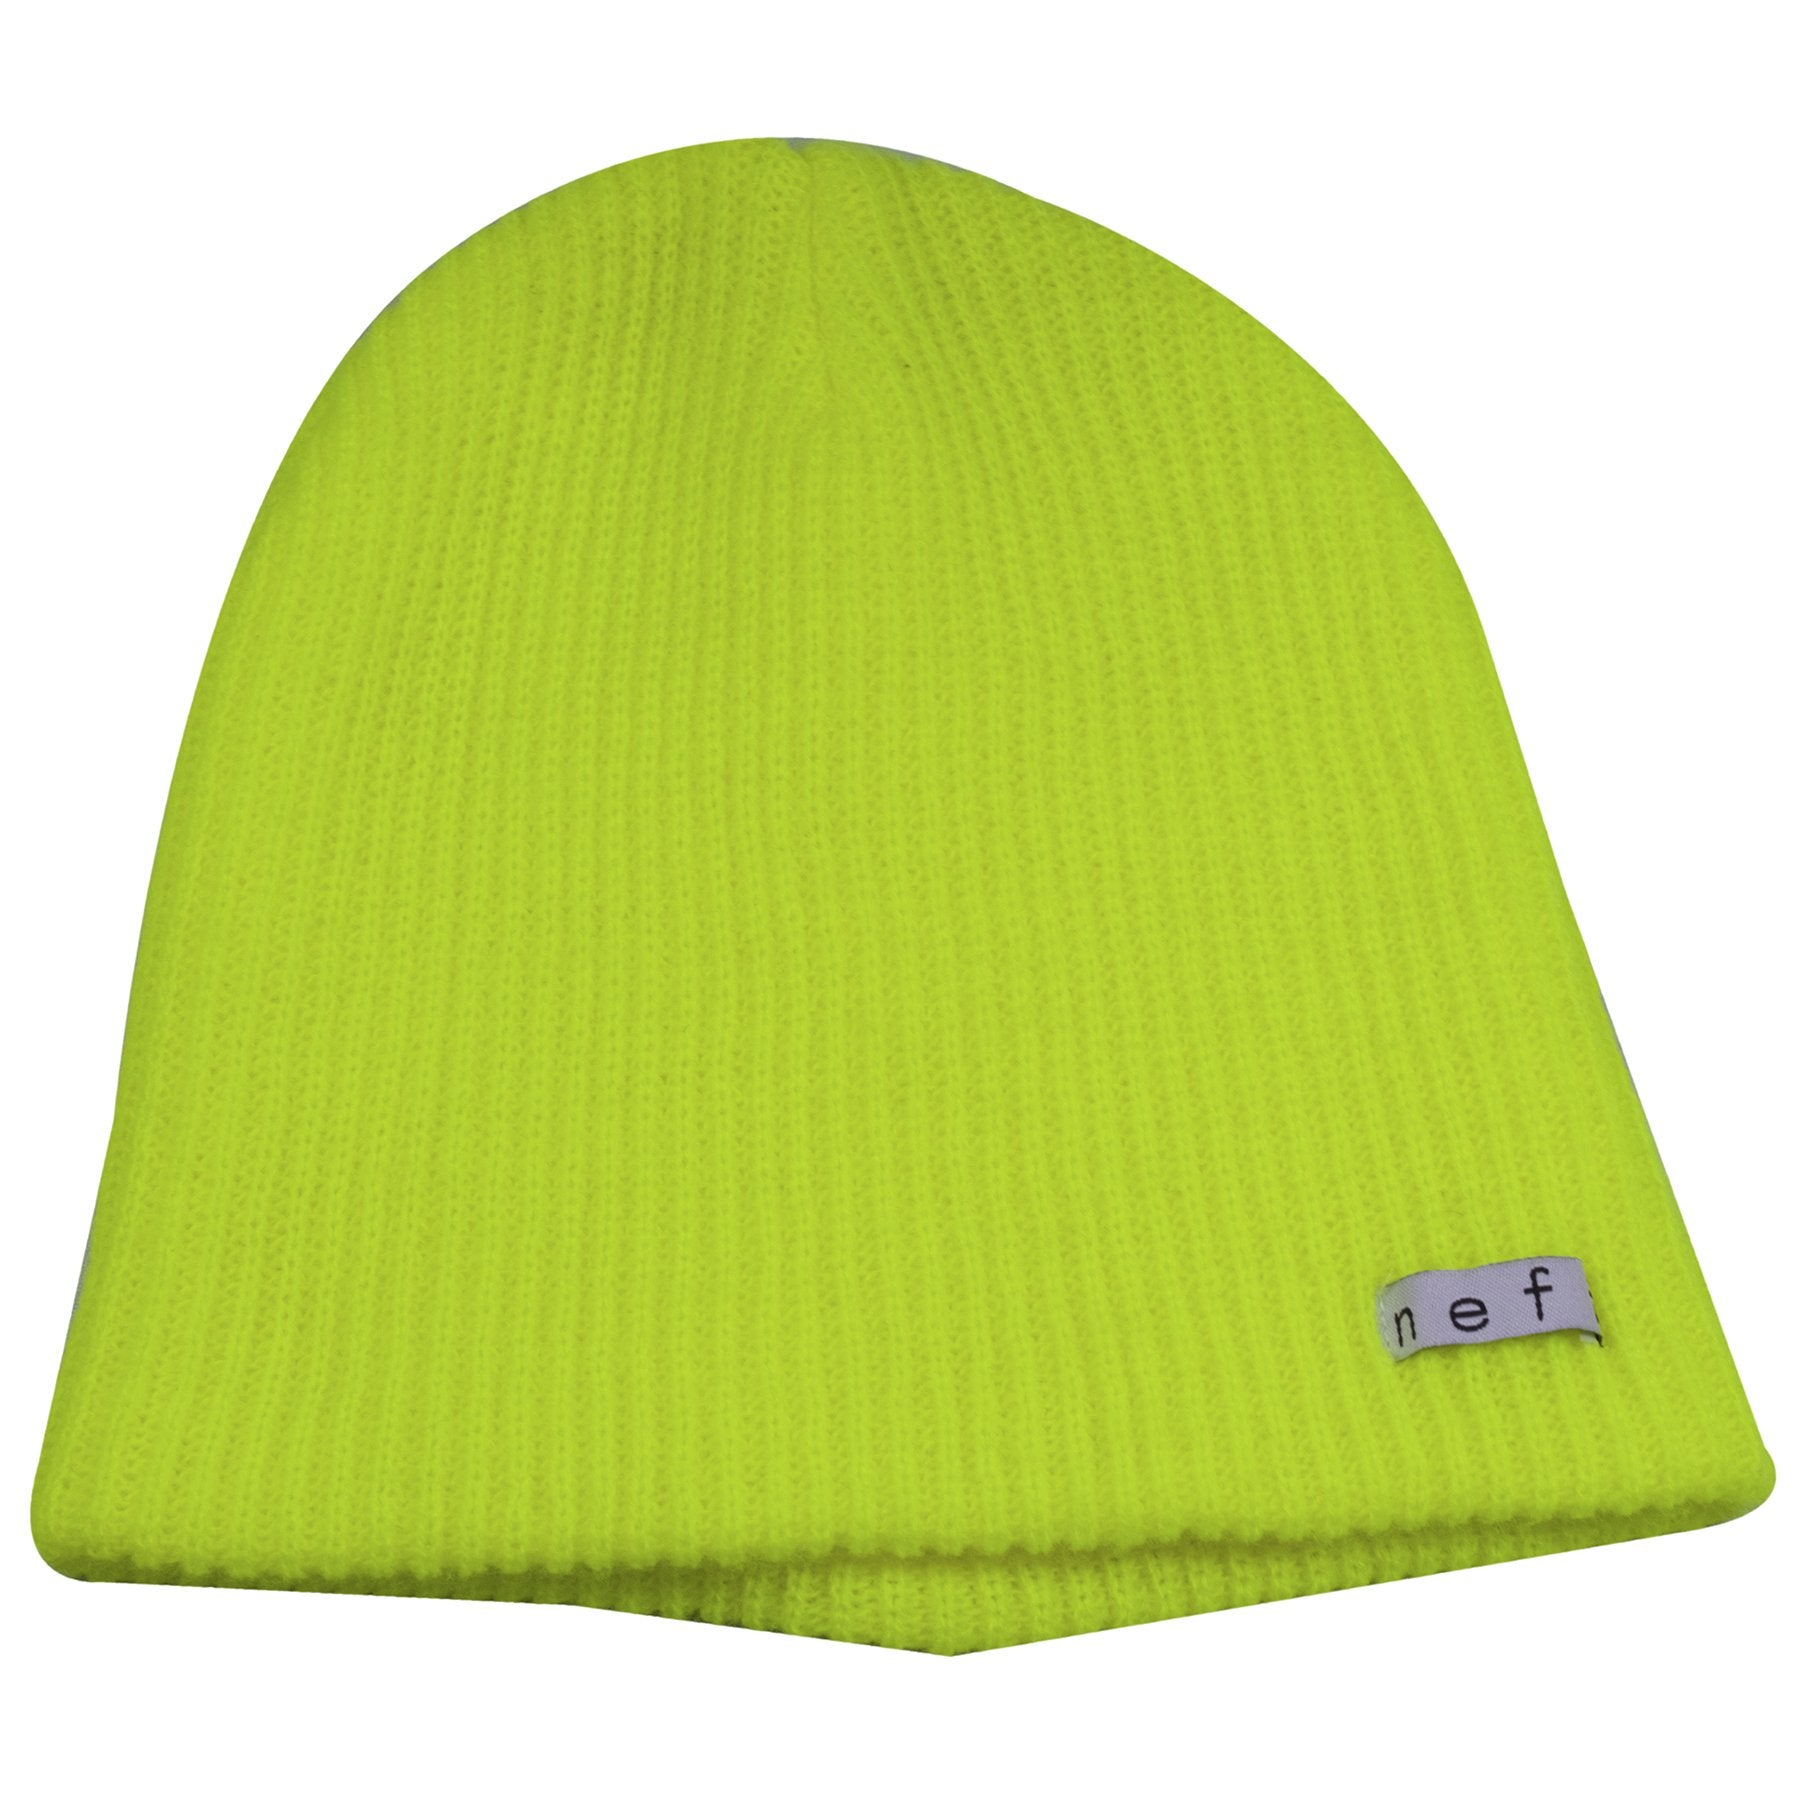 200e4a52a54 the neon green neff daily beanie is solid neon green with a tag that says  neff